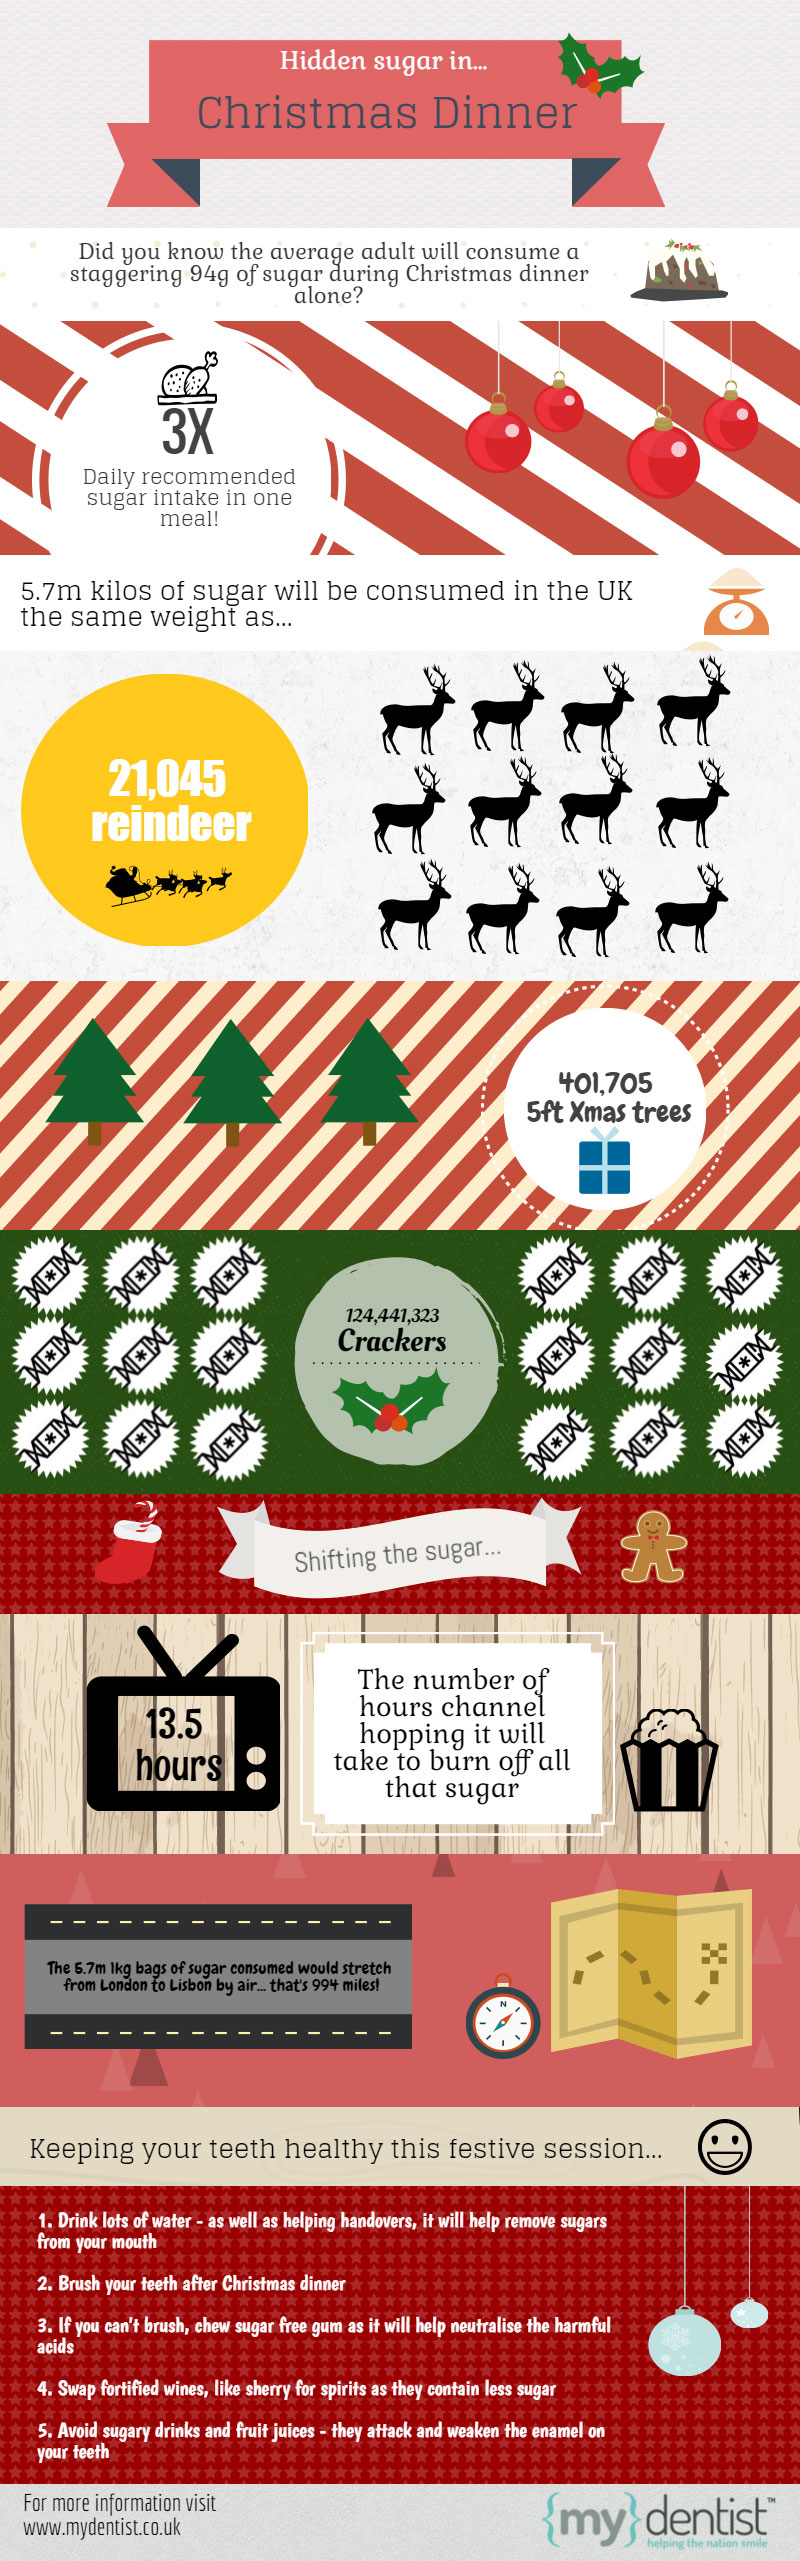 mydentist Christmas infographic December